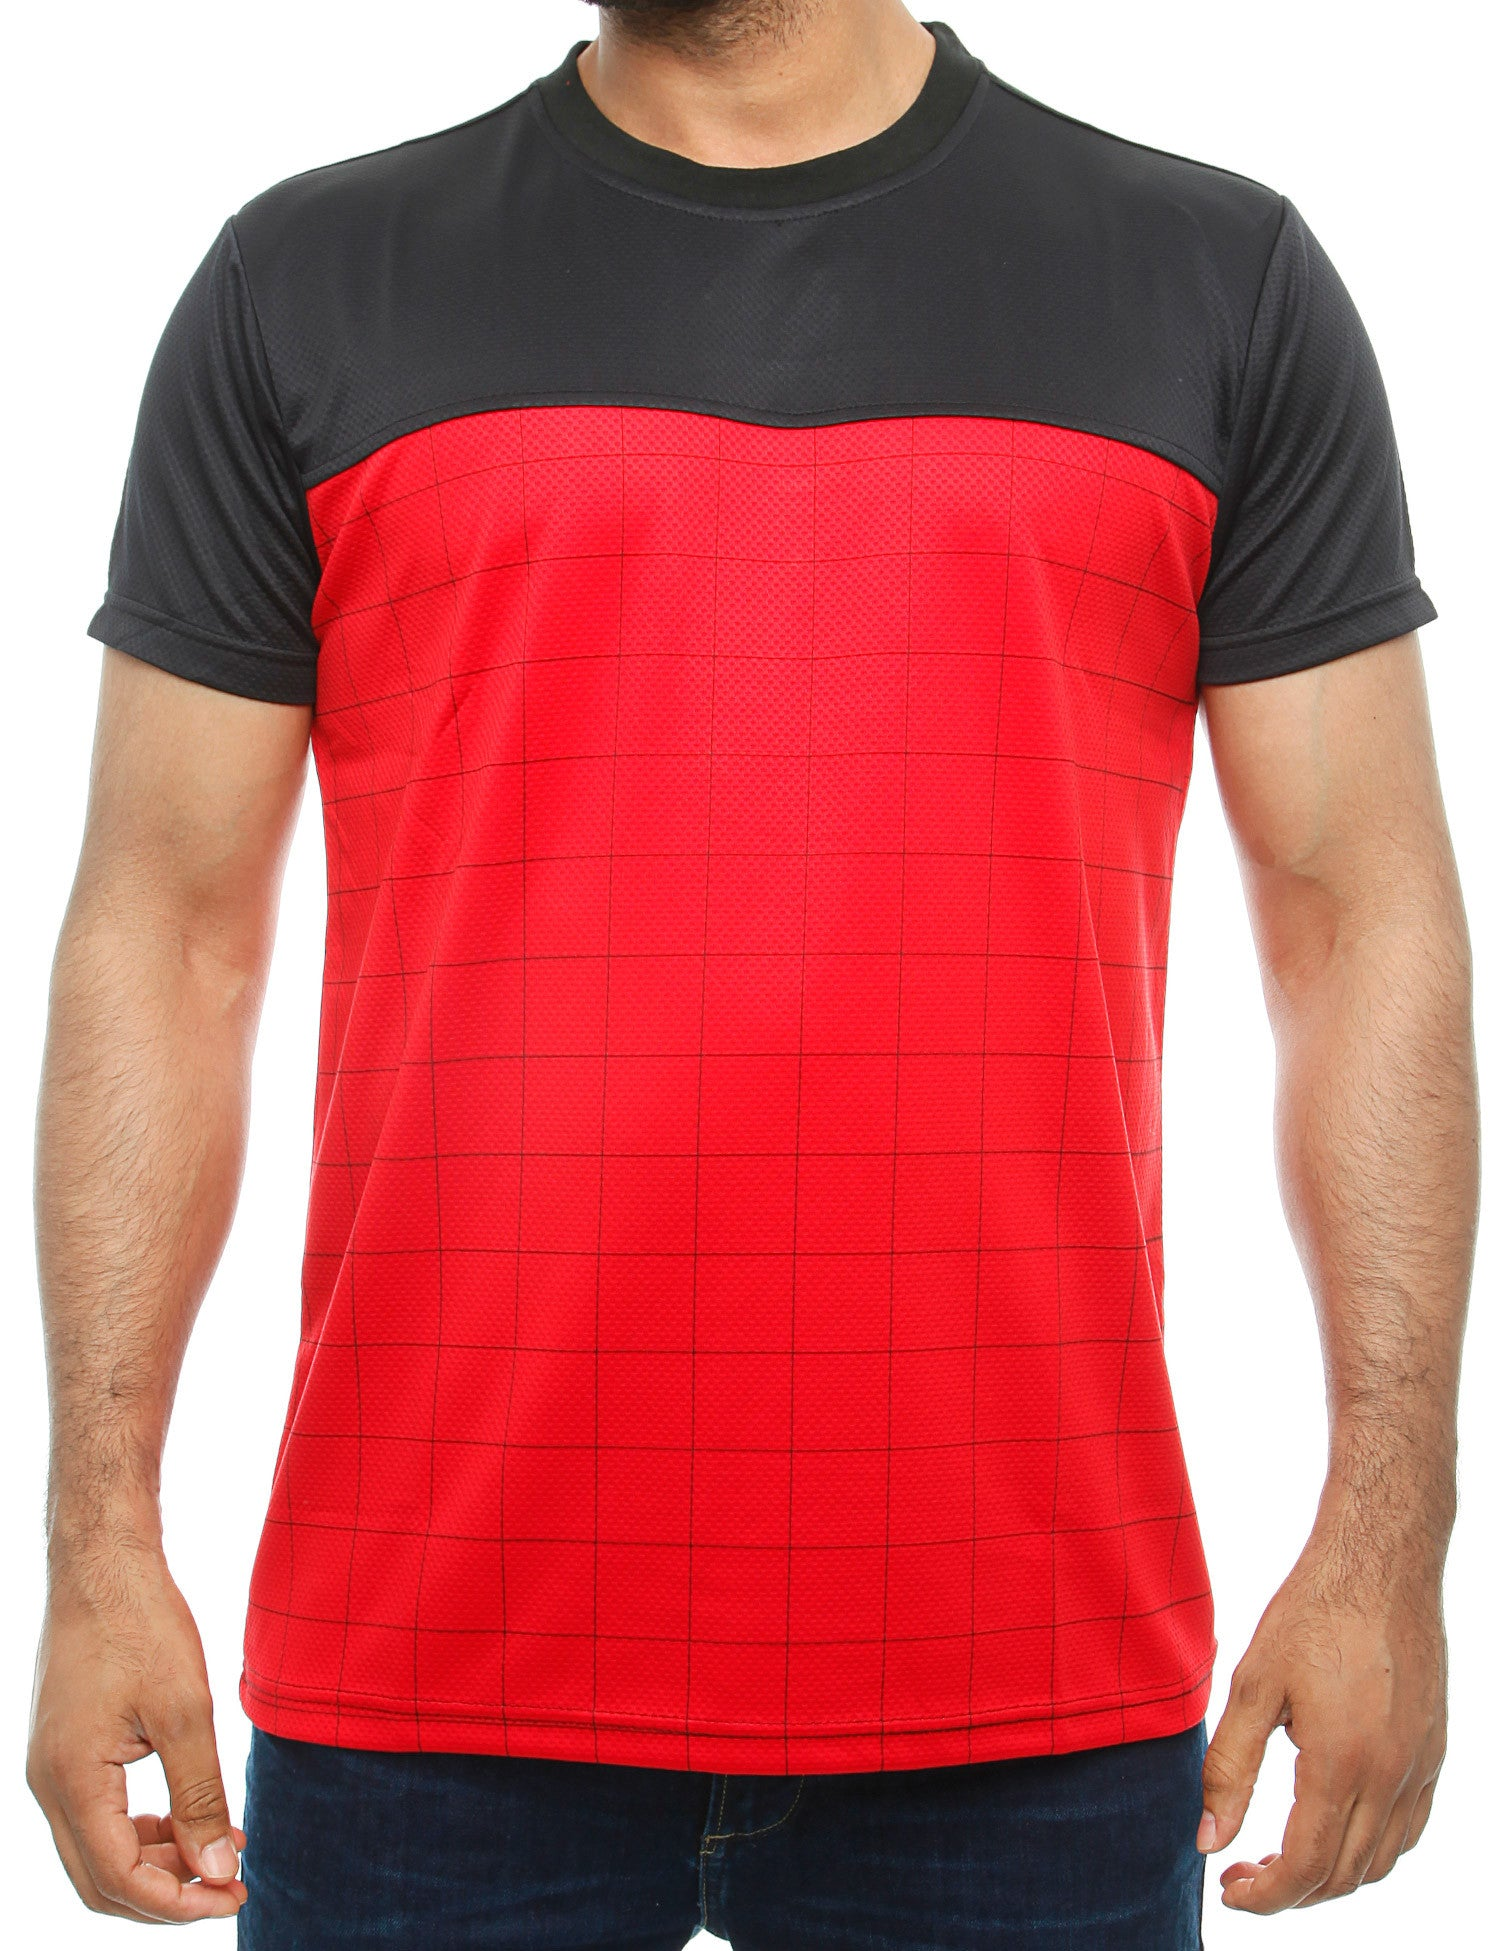 Imperious Mesh Color Block T-Shirt Red